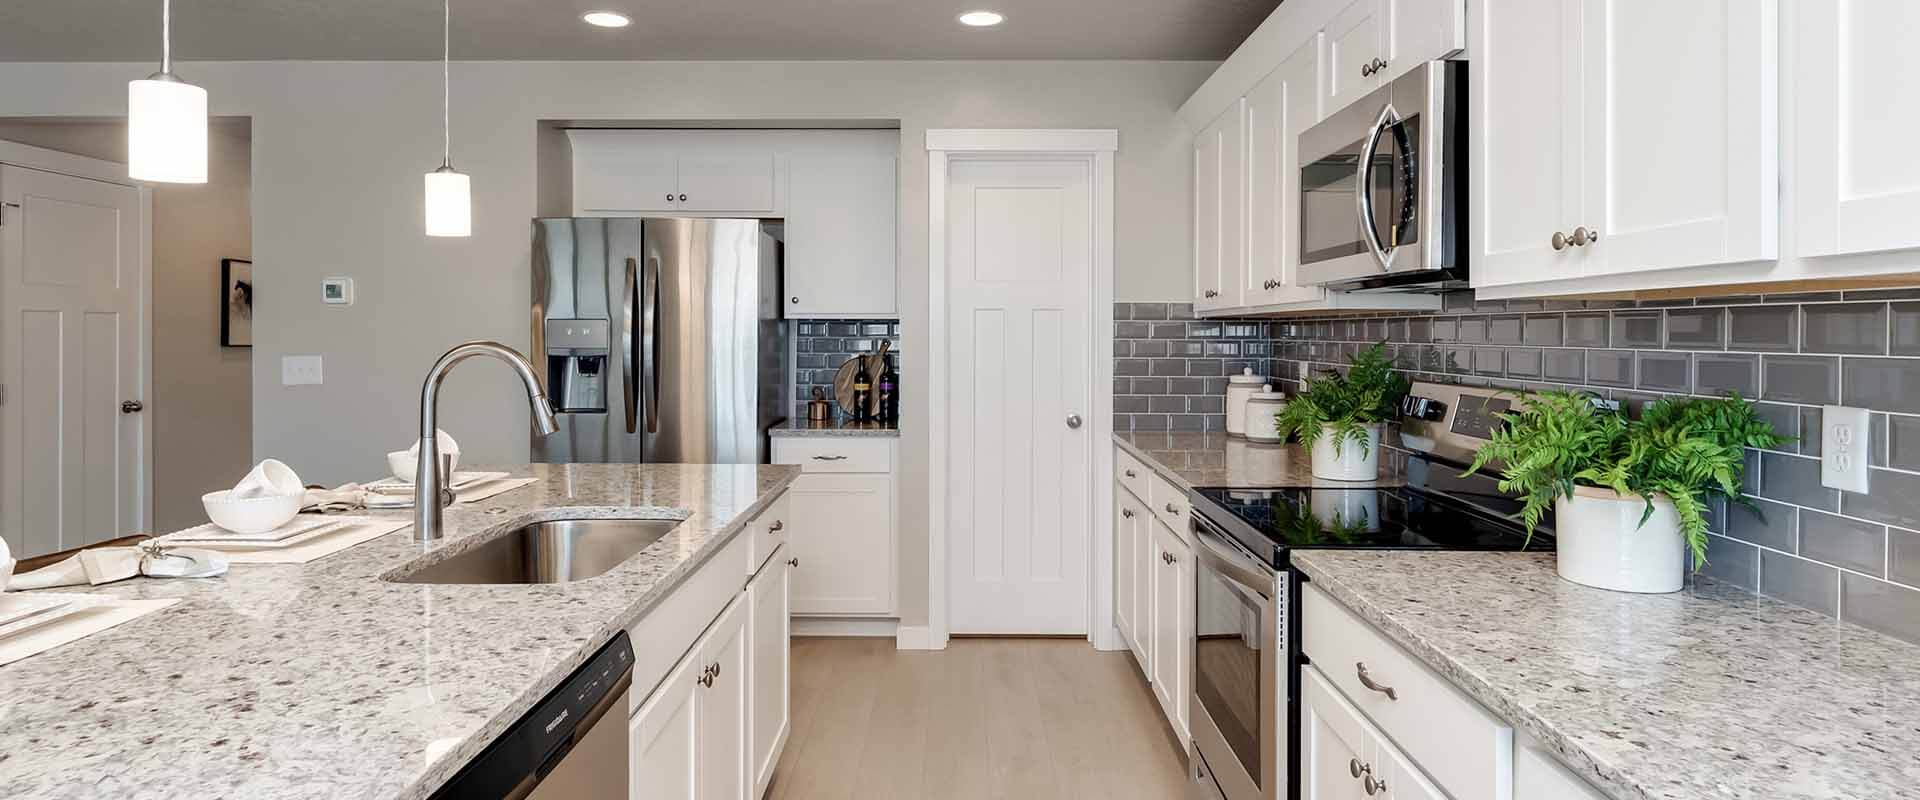 Garnet_Hubble_Homes_New_Homes_Boise_Kitchen1.jpg